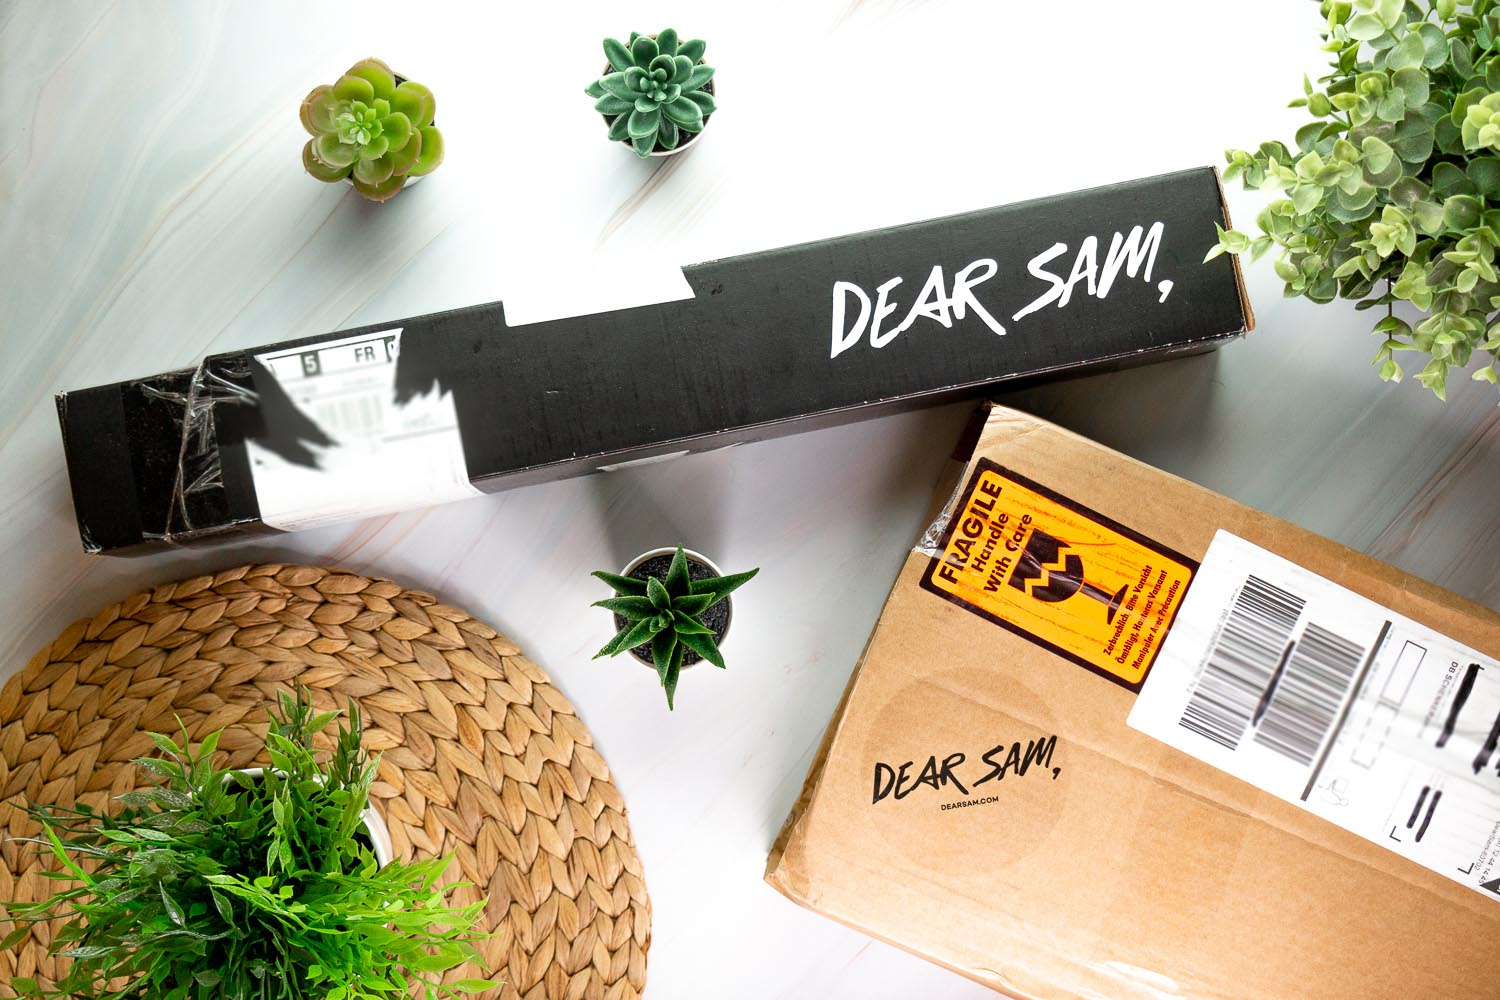 dear sam mon grain de folie cartons